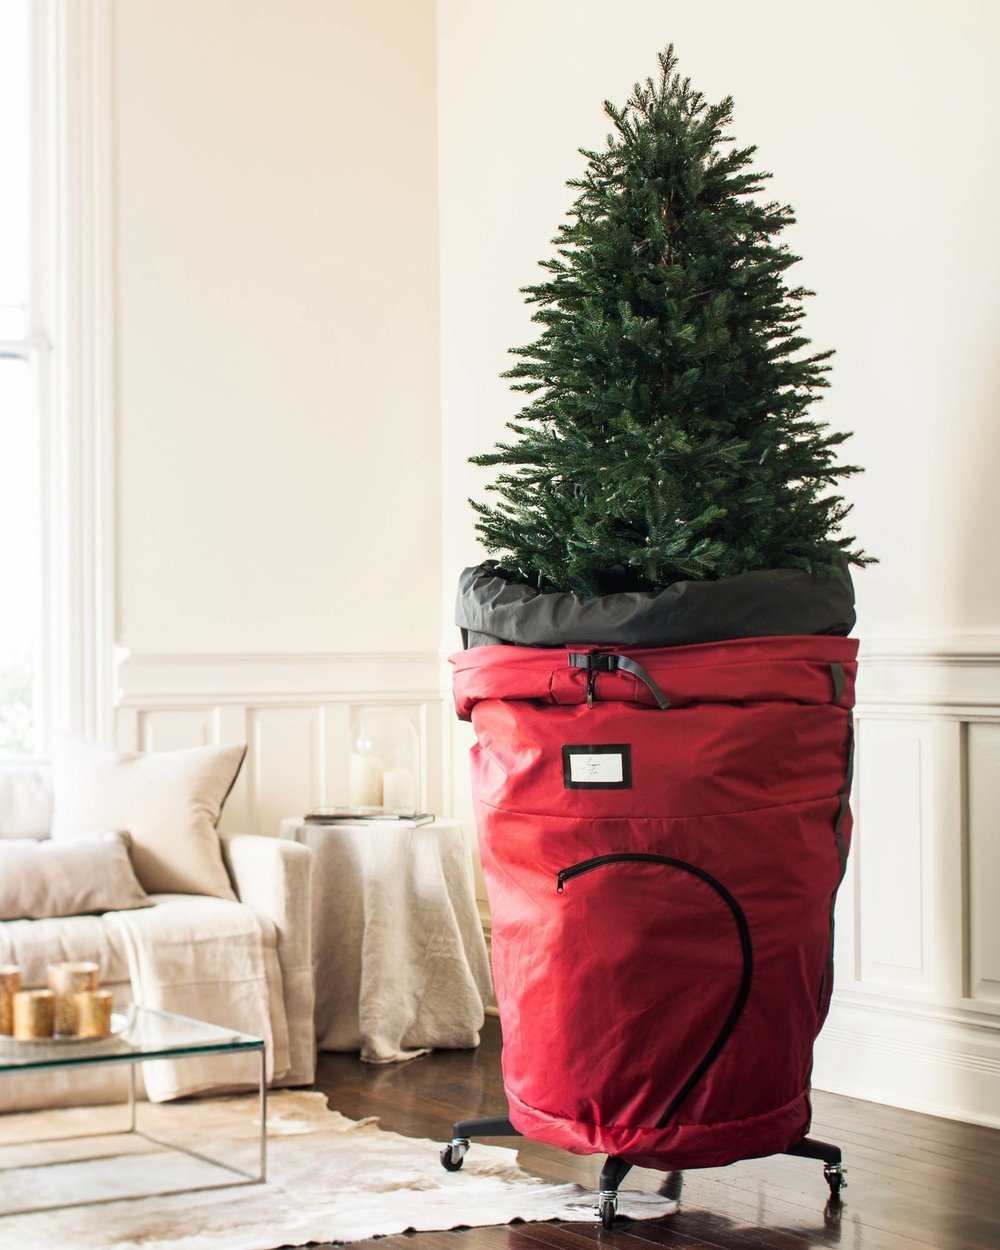 BALSAM HILL STG-1441000_Rolling-Christmas-Tree-Storage-Bag_Lifestyle-10.jpeg